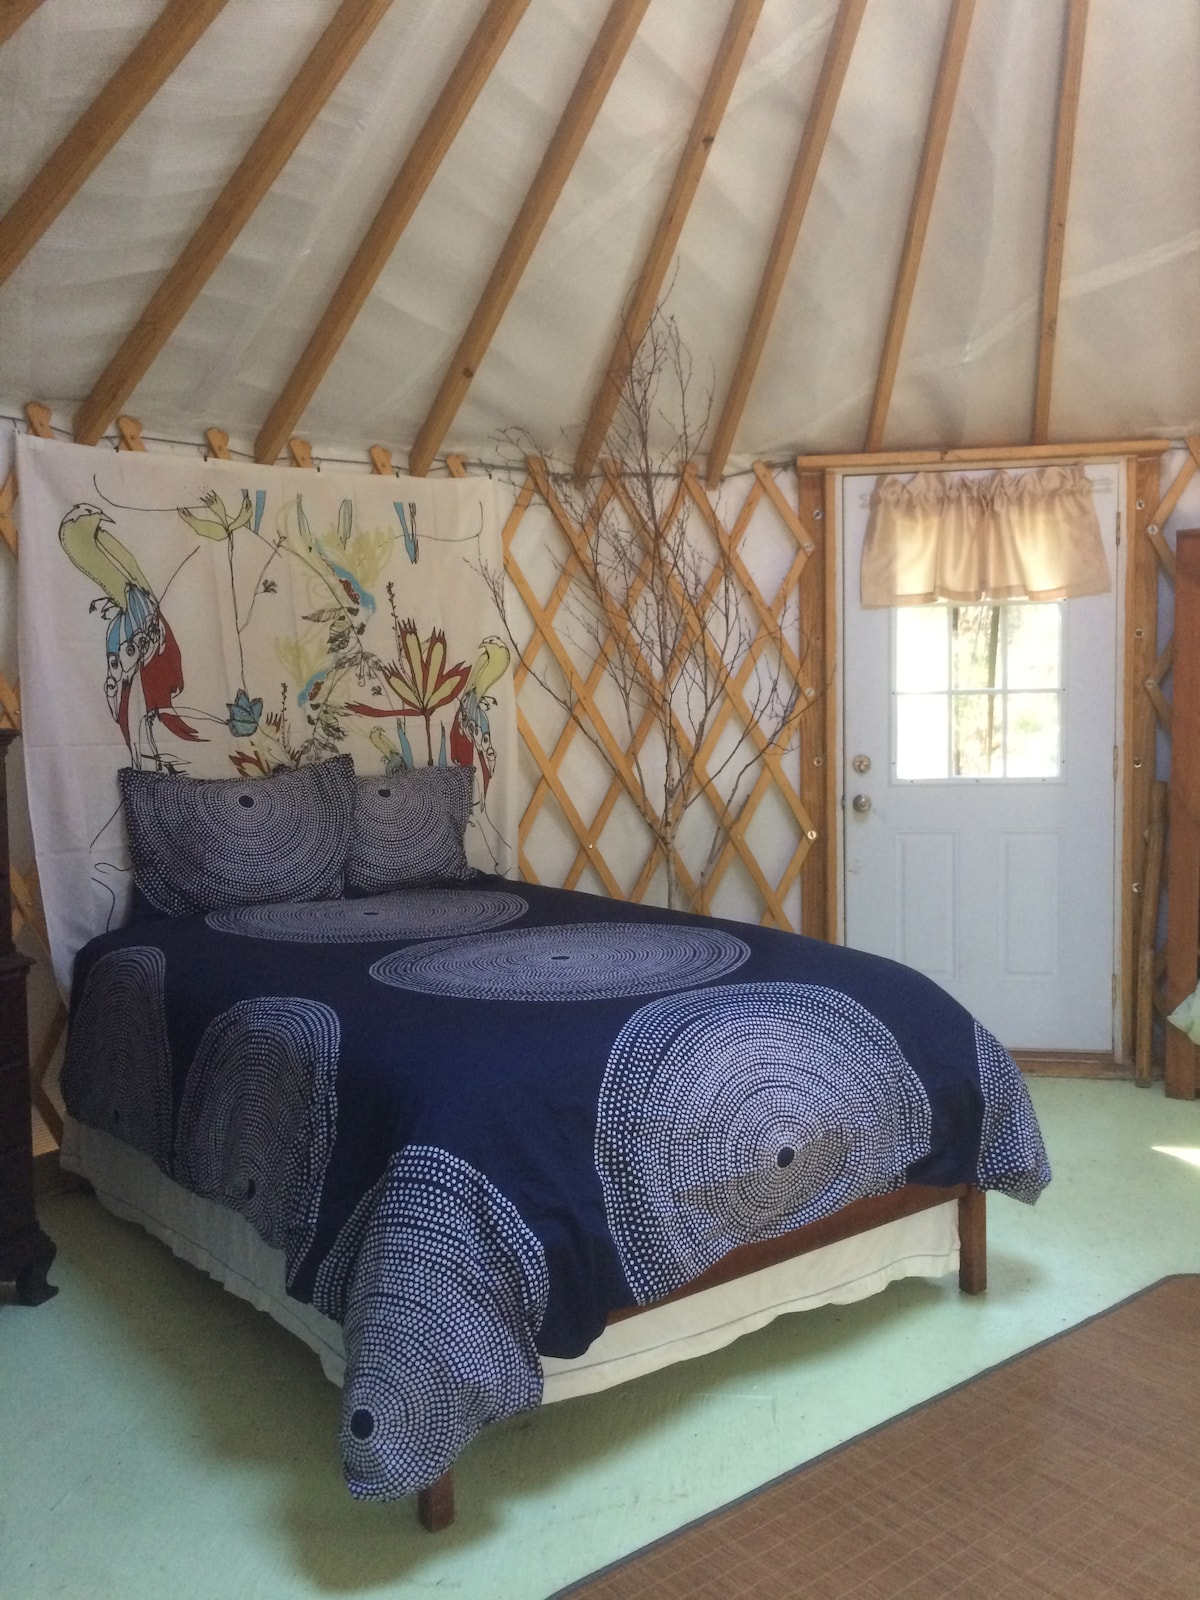 Stowe Forest Yurt